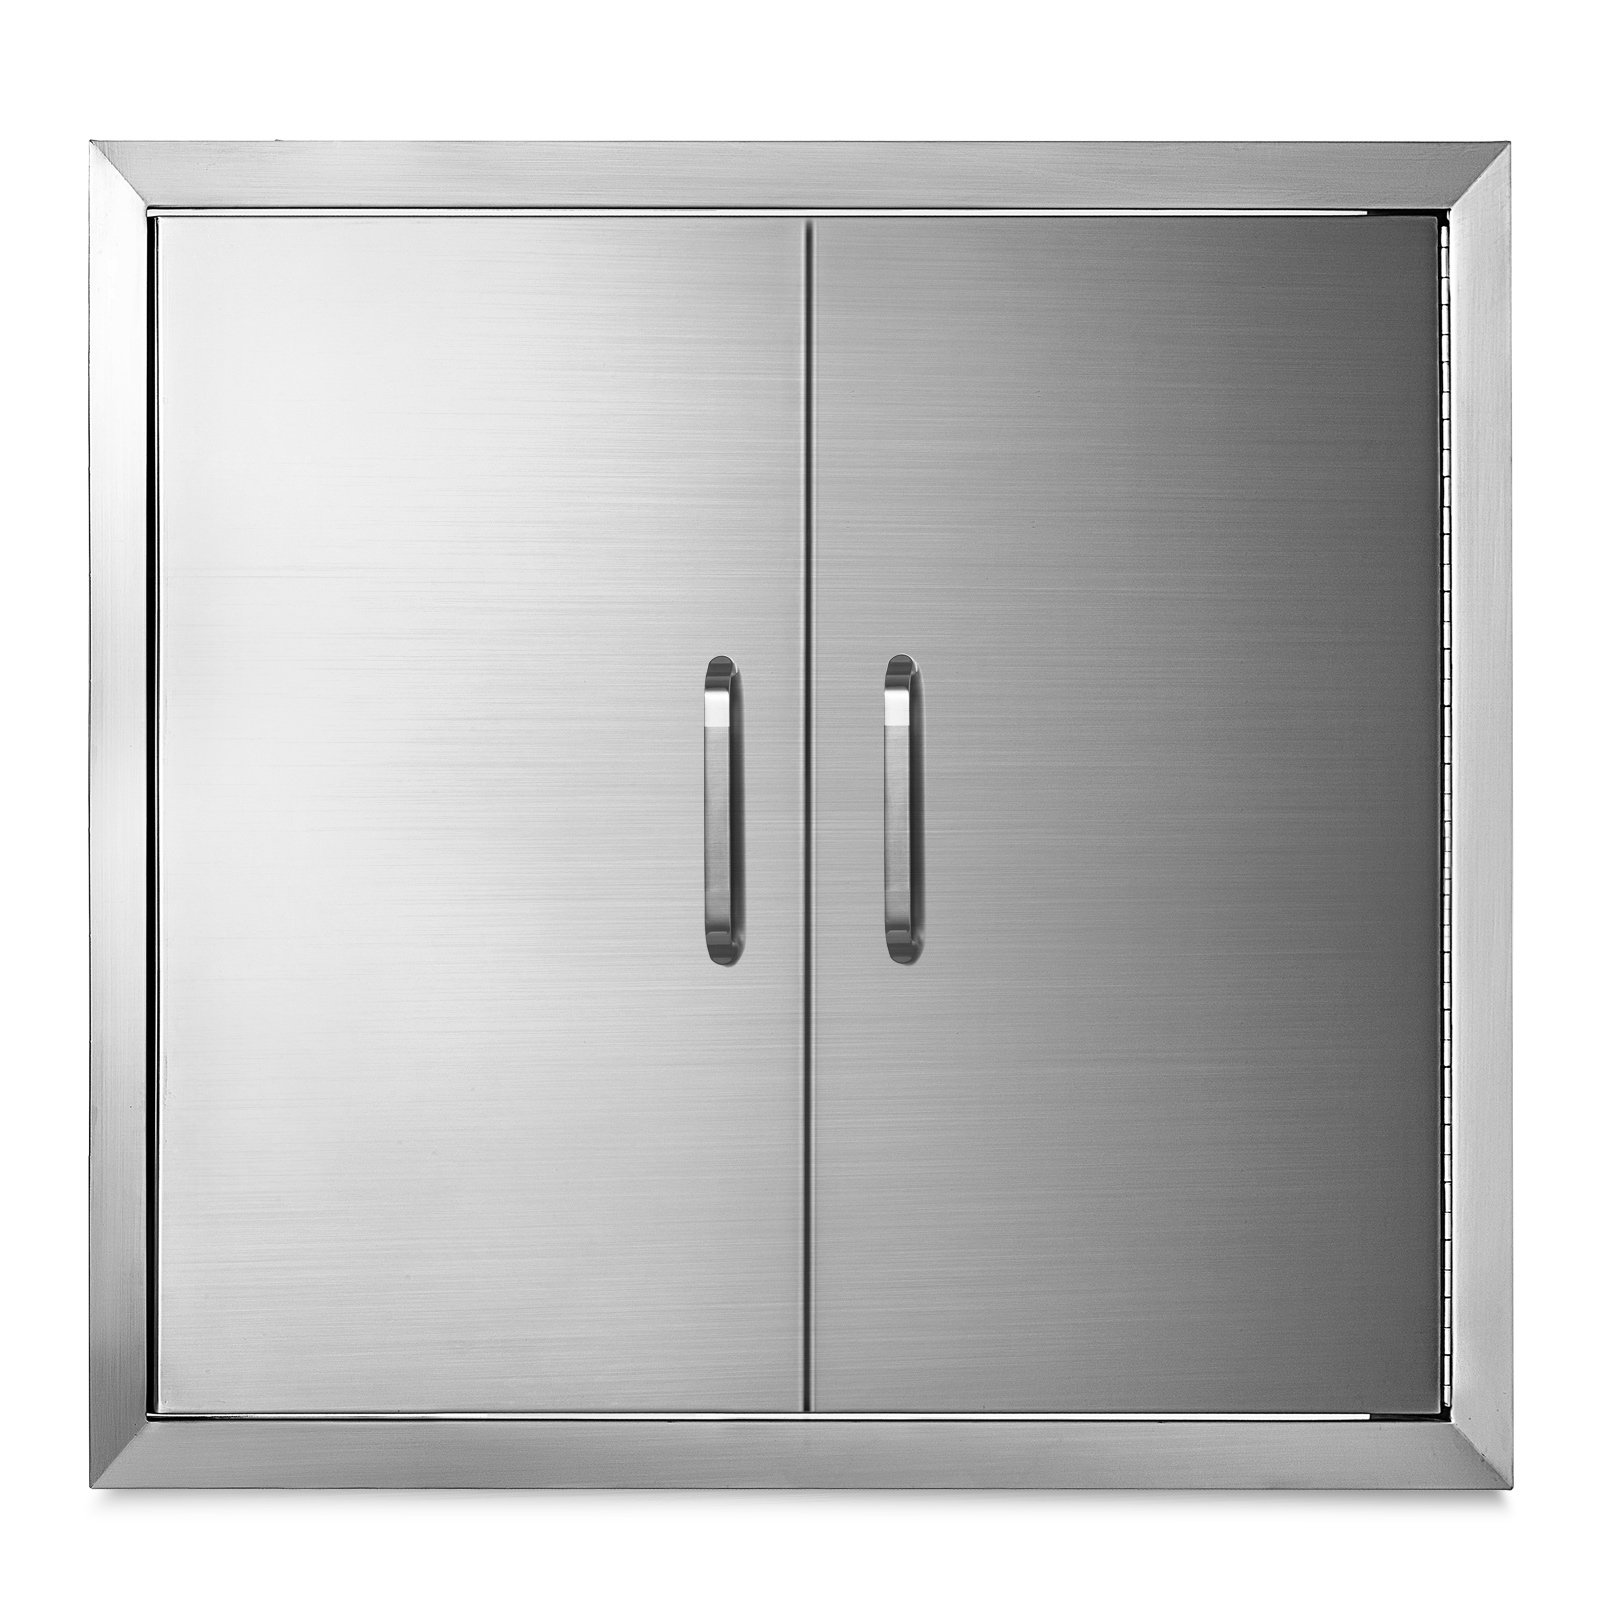 """Happybuy Double walled Access Door 26""""x 24""""BBQ Island Door Stainless Steel for Commercial BBQ Island, Outdoor Grilling Station, Outdoor Kitchen, Flush Mount, Brush (26""""x 24"""" Double walled Access Door)"""